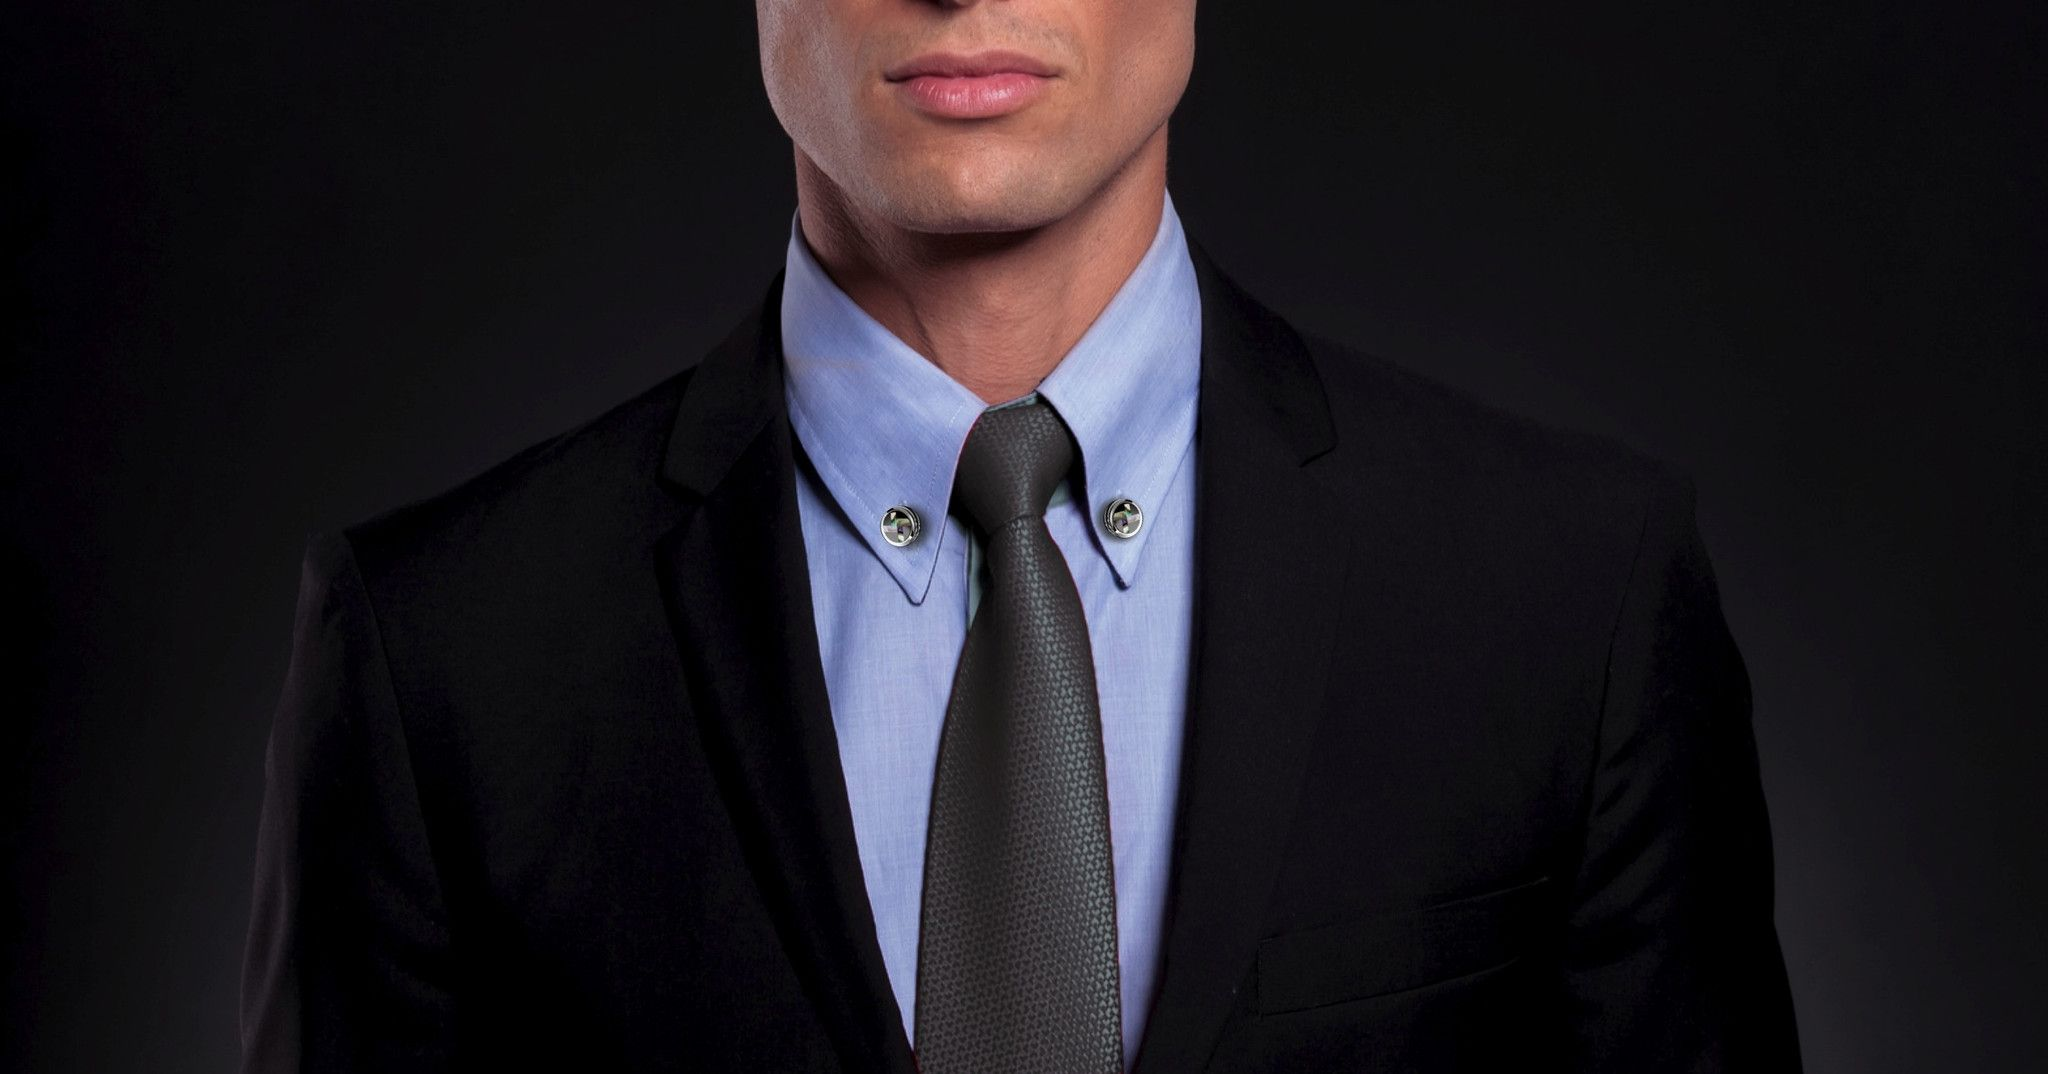 Collar Links Flux Quantum Shirt Buttons The Next Generation In